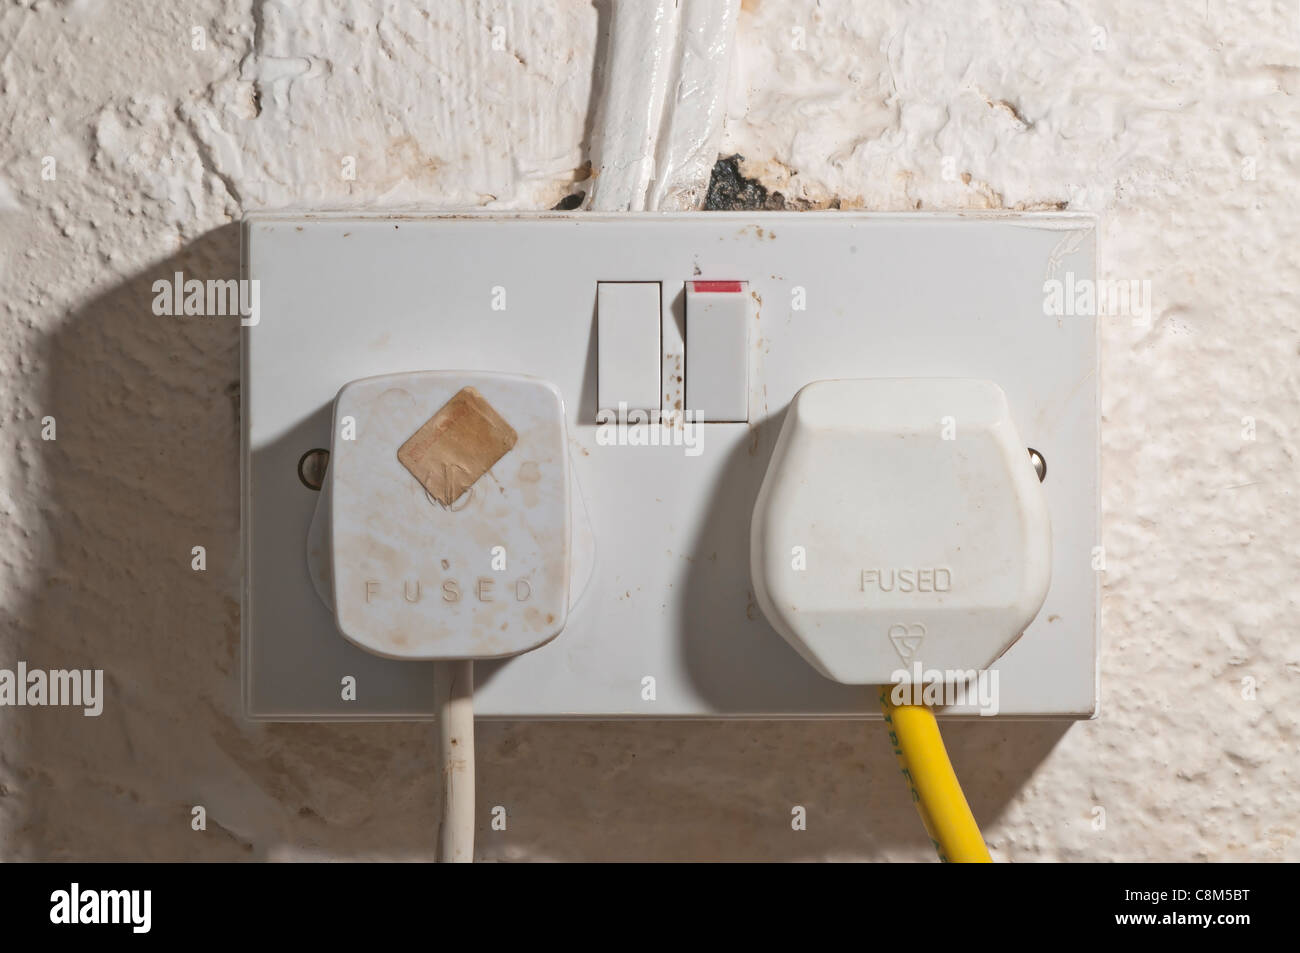 British twin electric socket and fused plugs, old wiring. - Stock Image